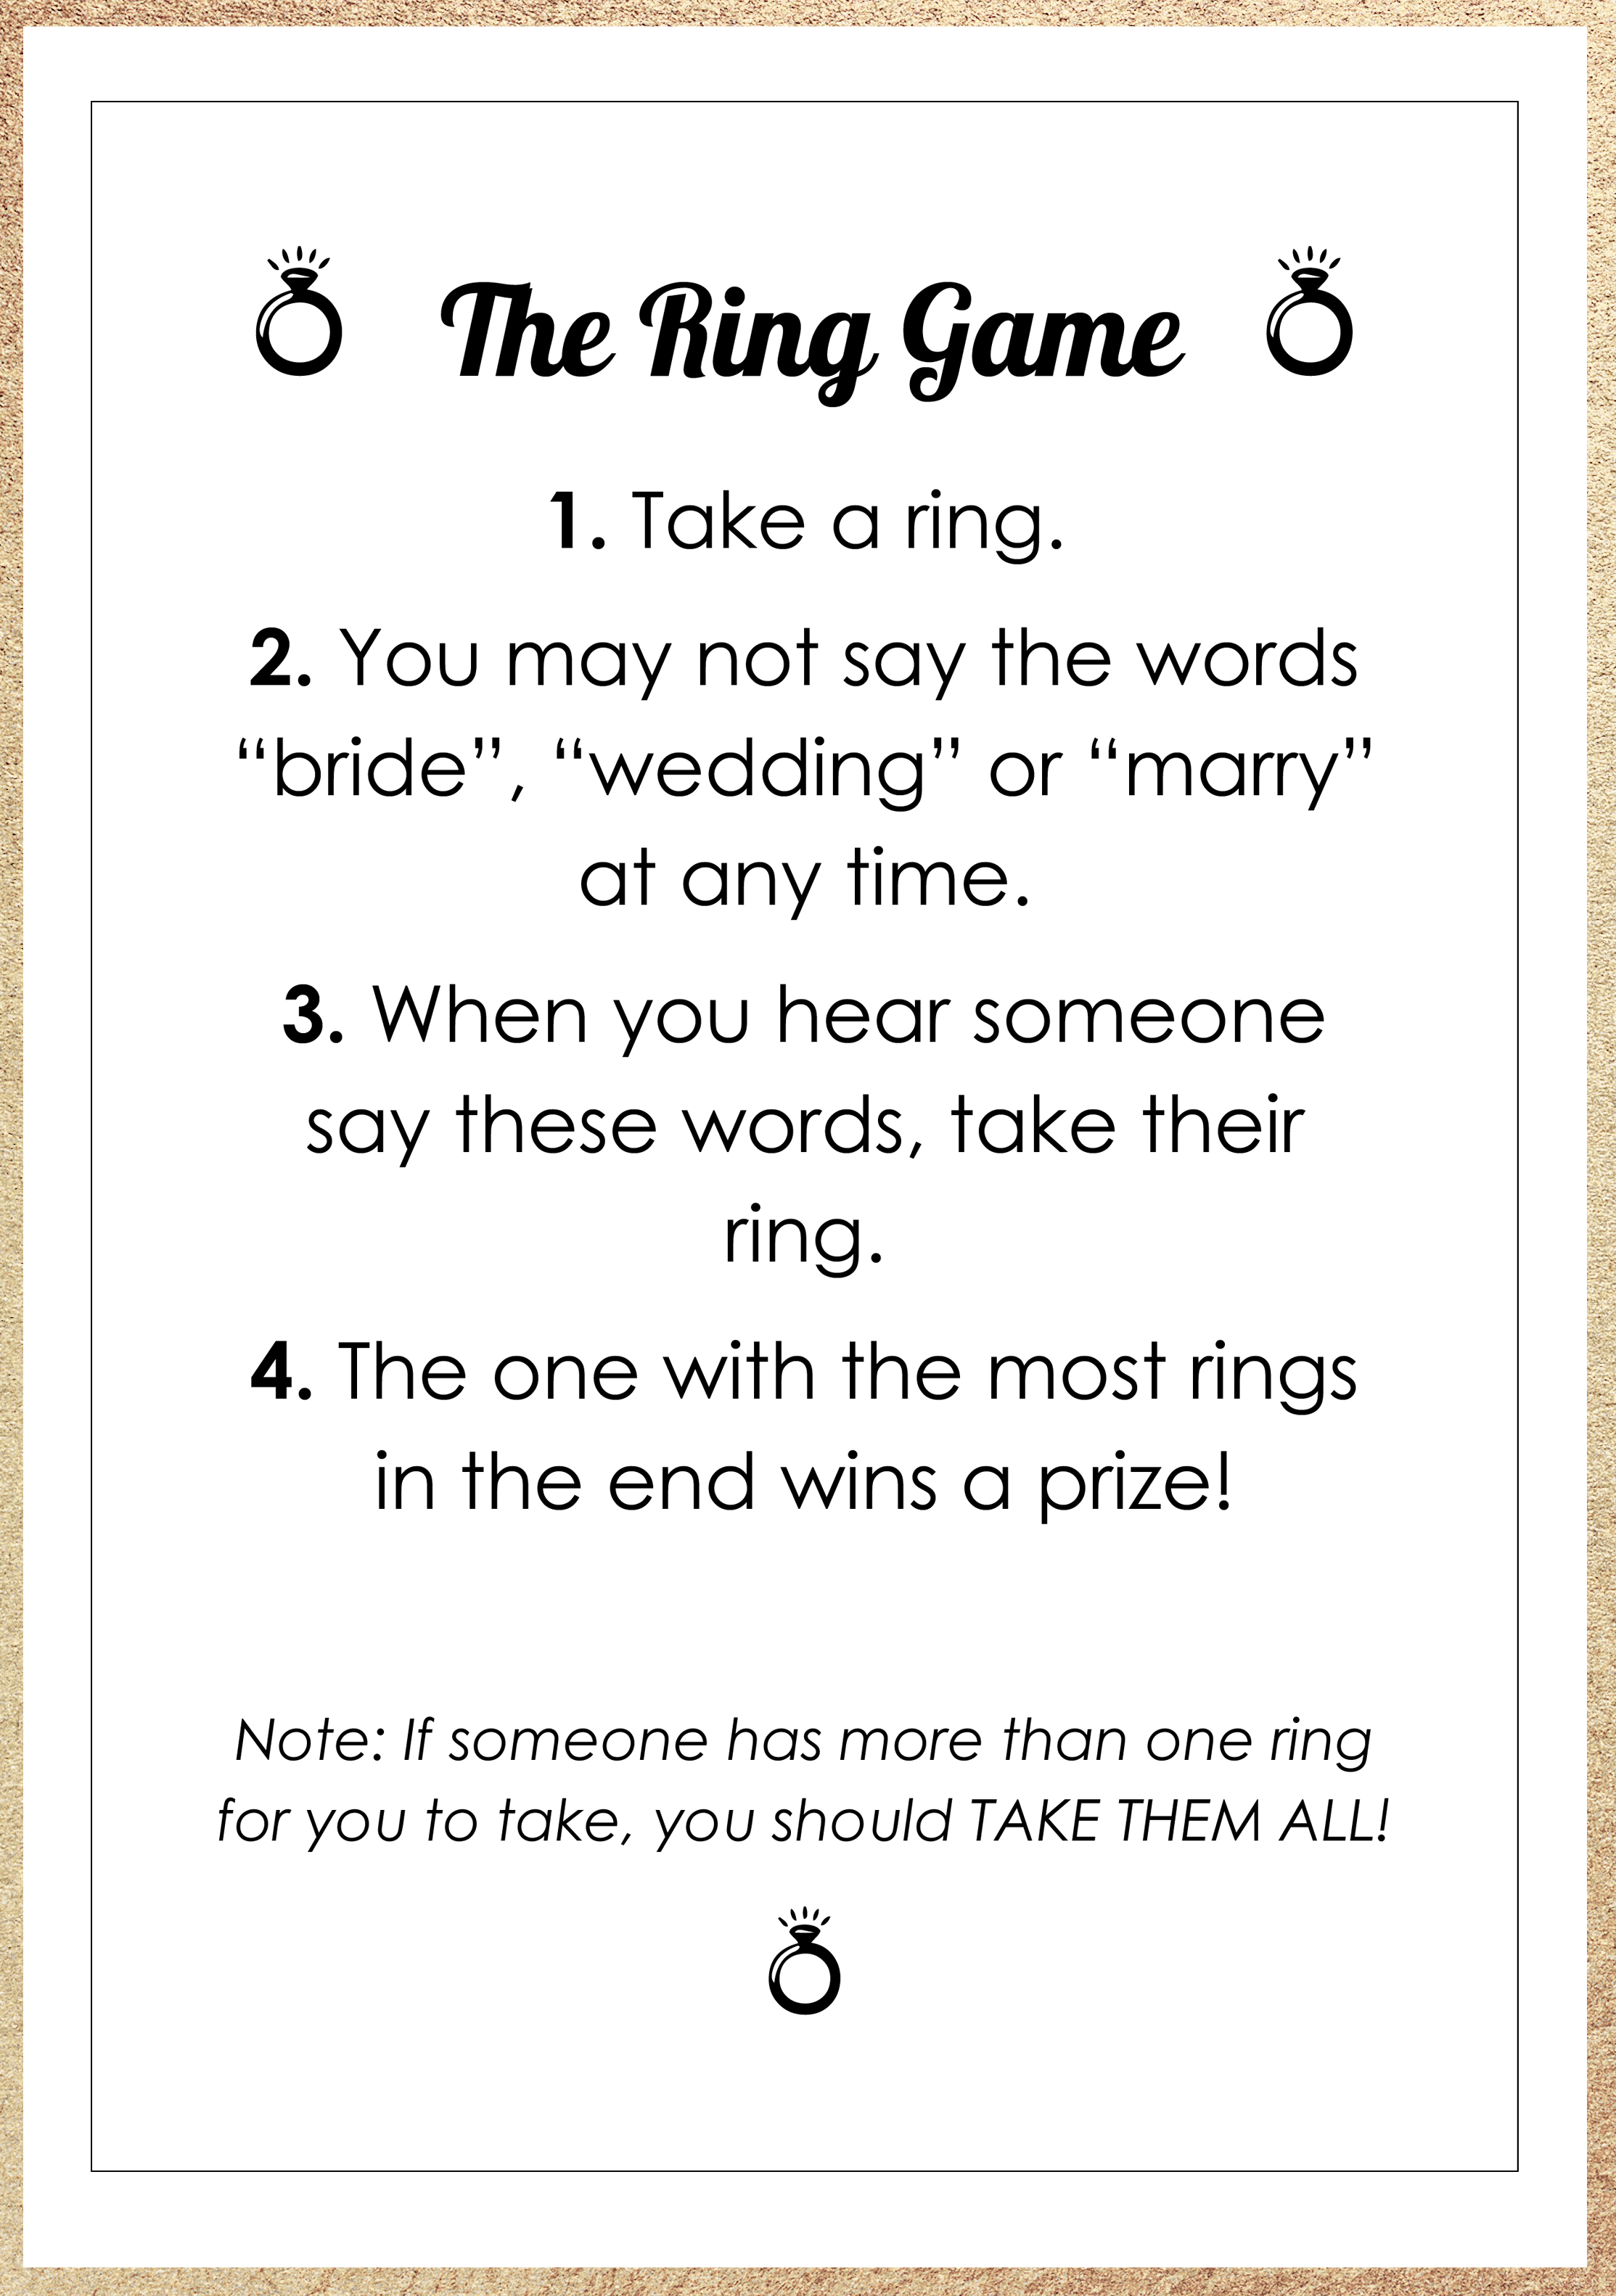 graphic regarding Printable Wedding Shower Games called 14 Simple and tremendous entertaining Bridal Shower Video games + Cost-free Printables